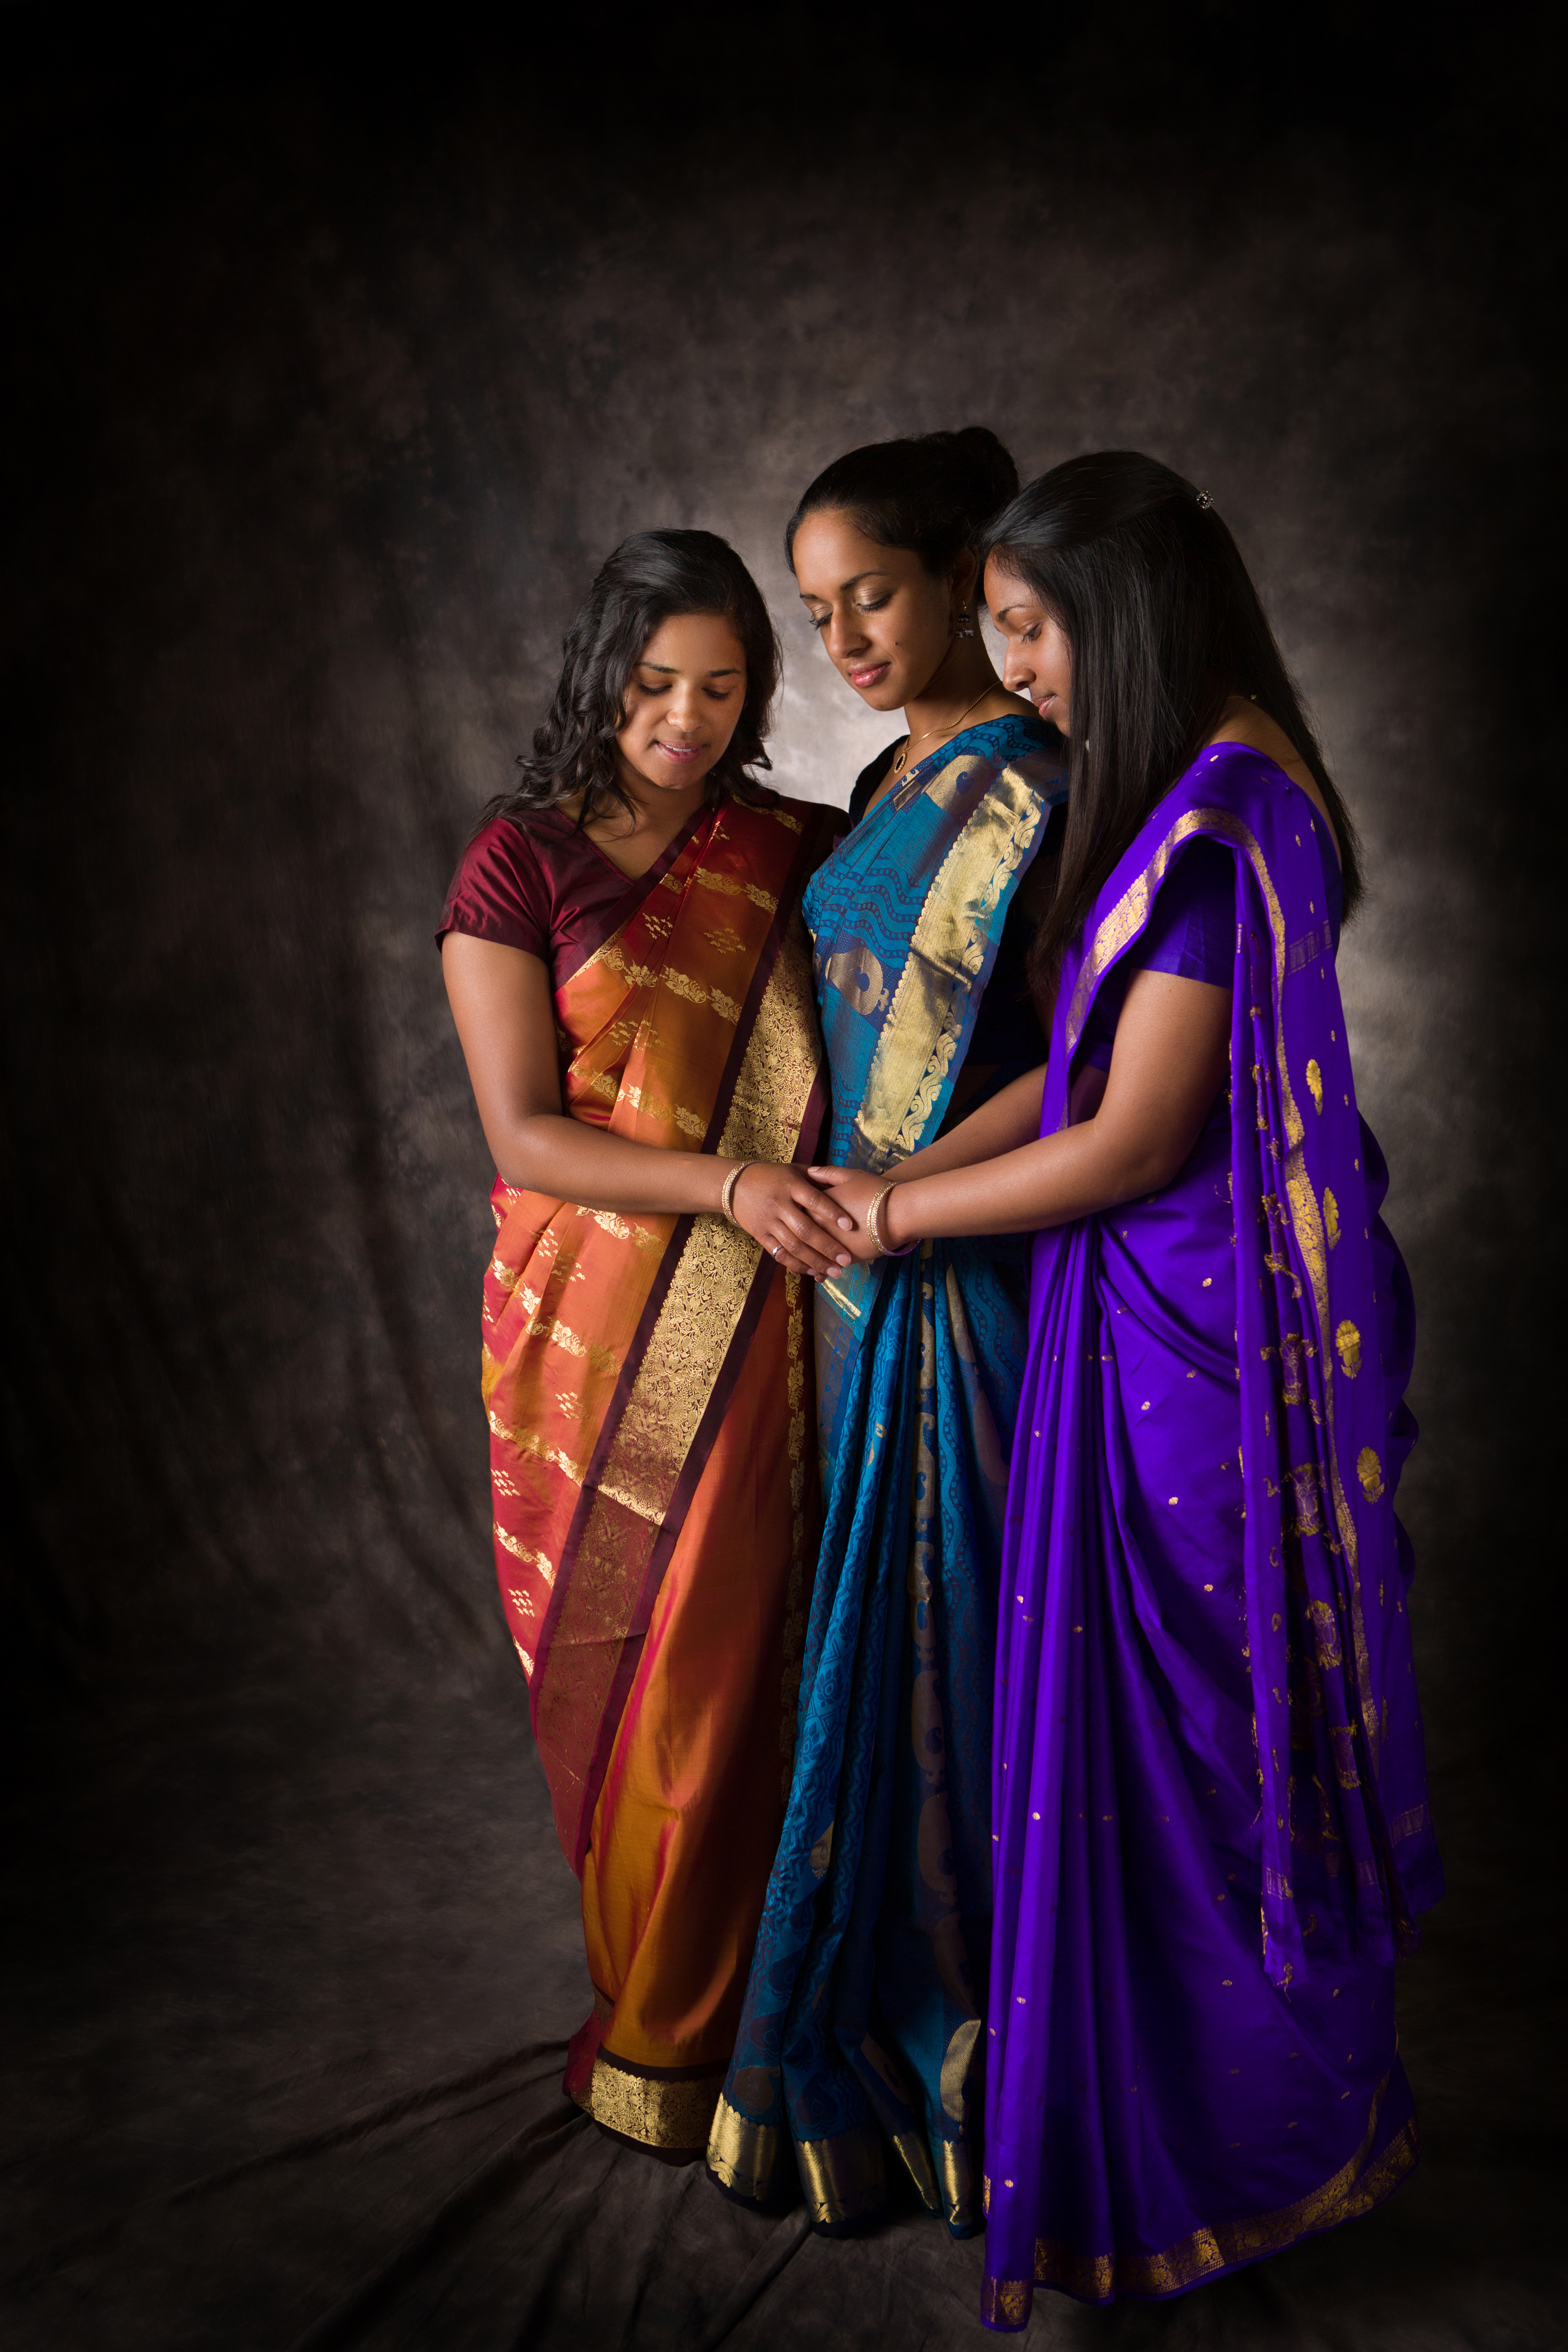 Three women wearing brightly coloured saris standing together